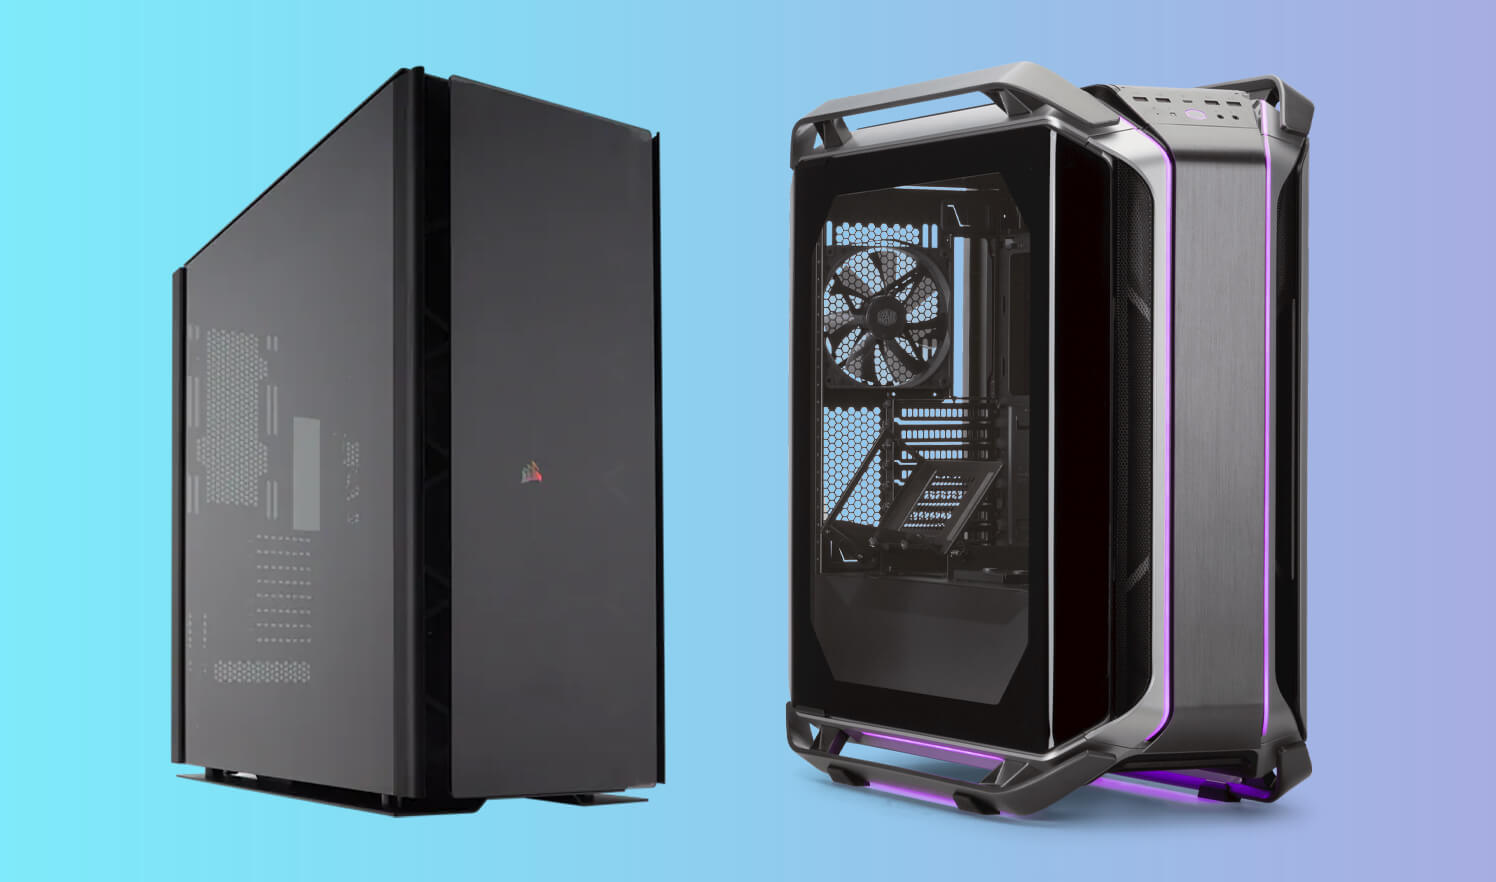 Best PC Cases - Gaming and High-Performance